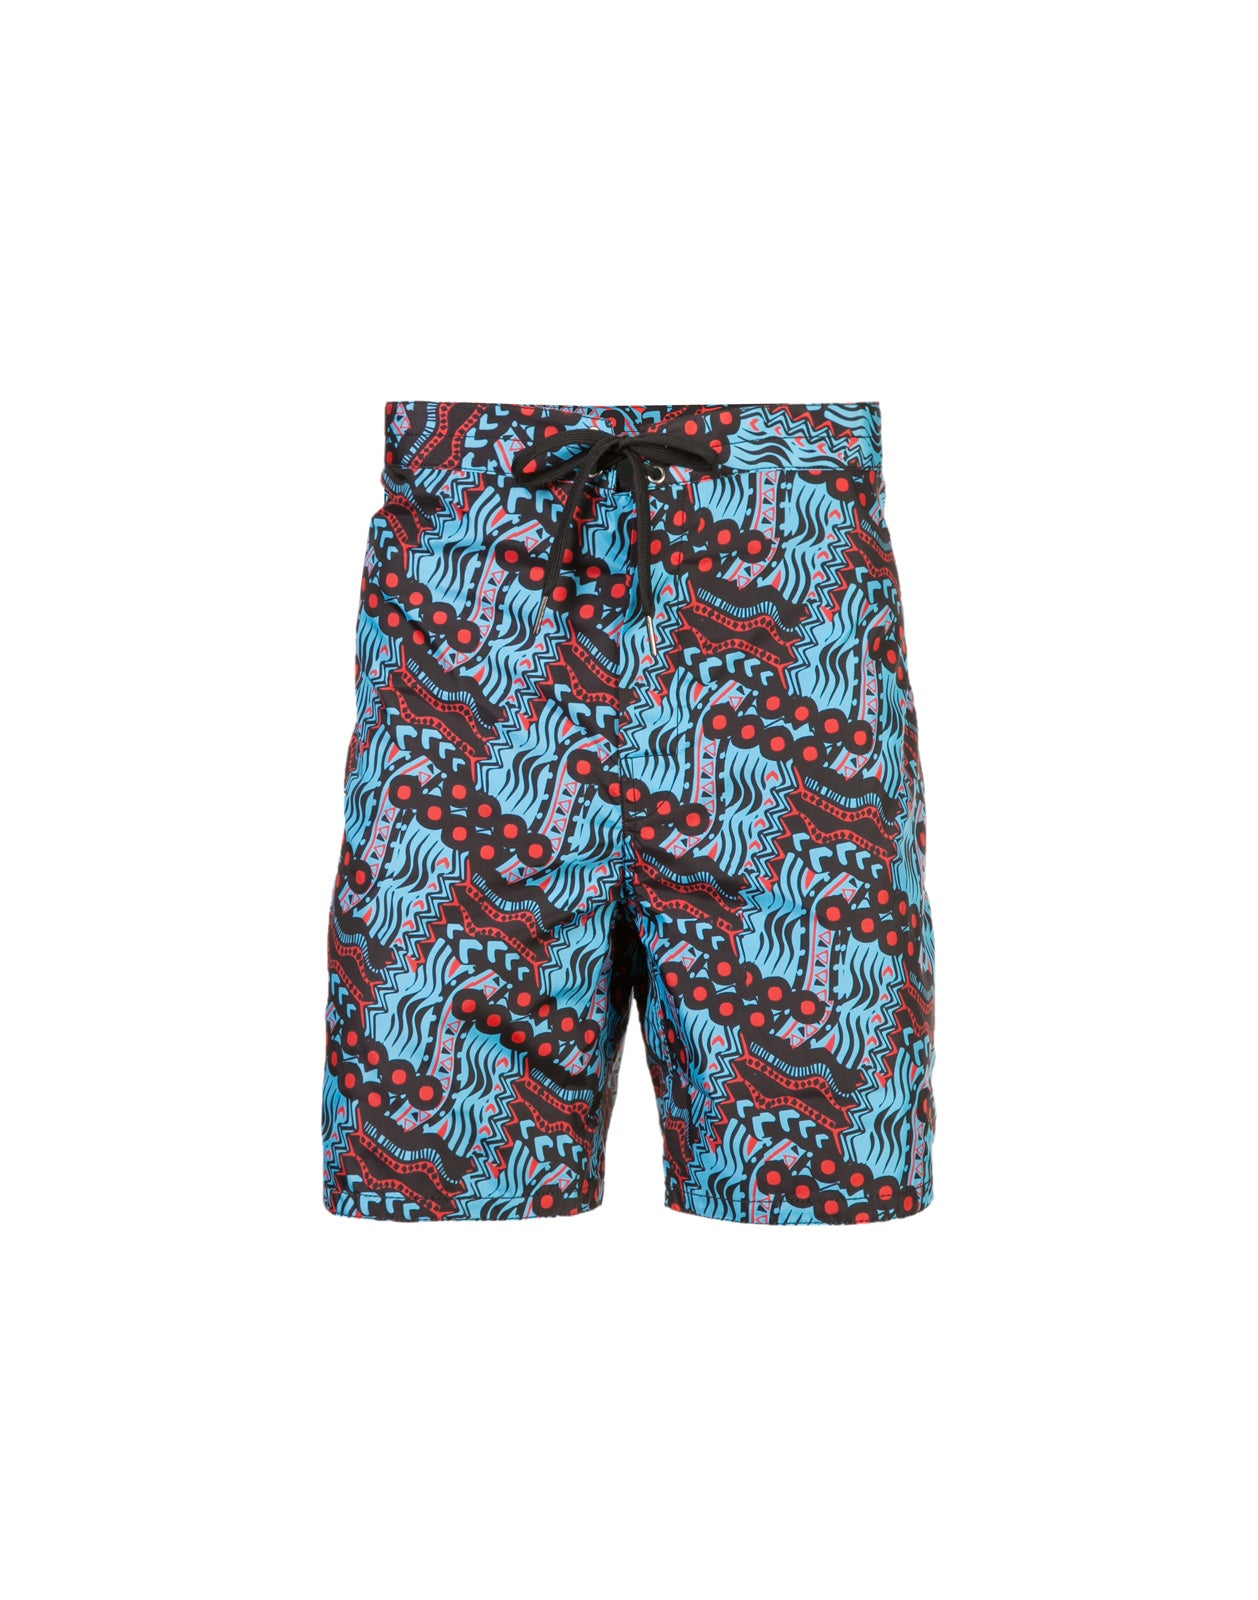 Camden Board Short in abstract blue and red print.